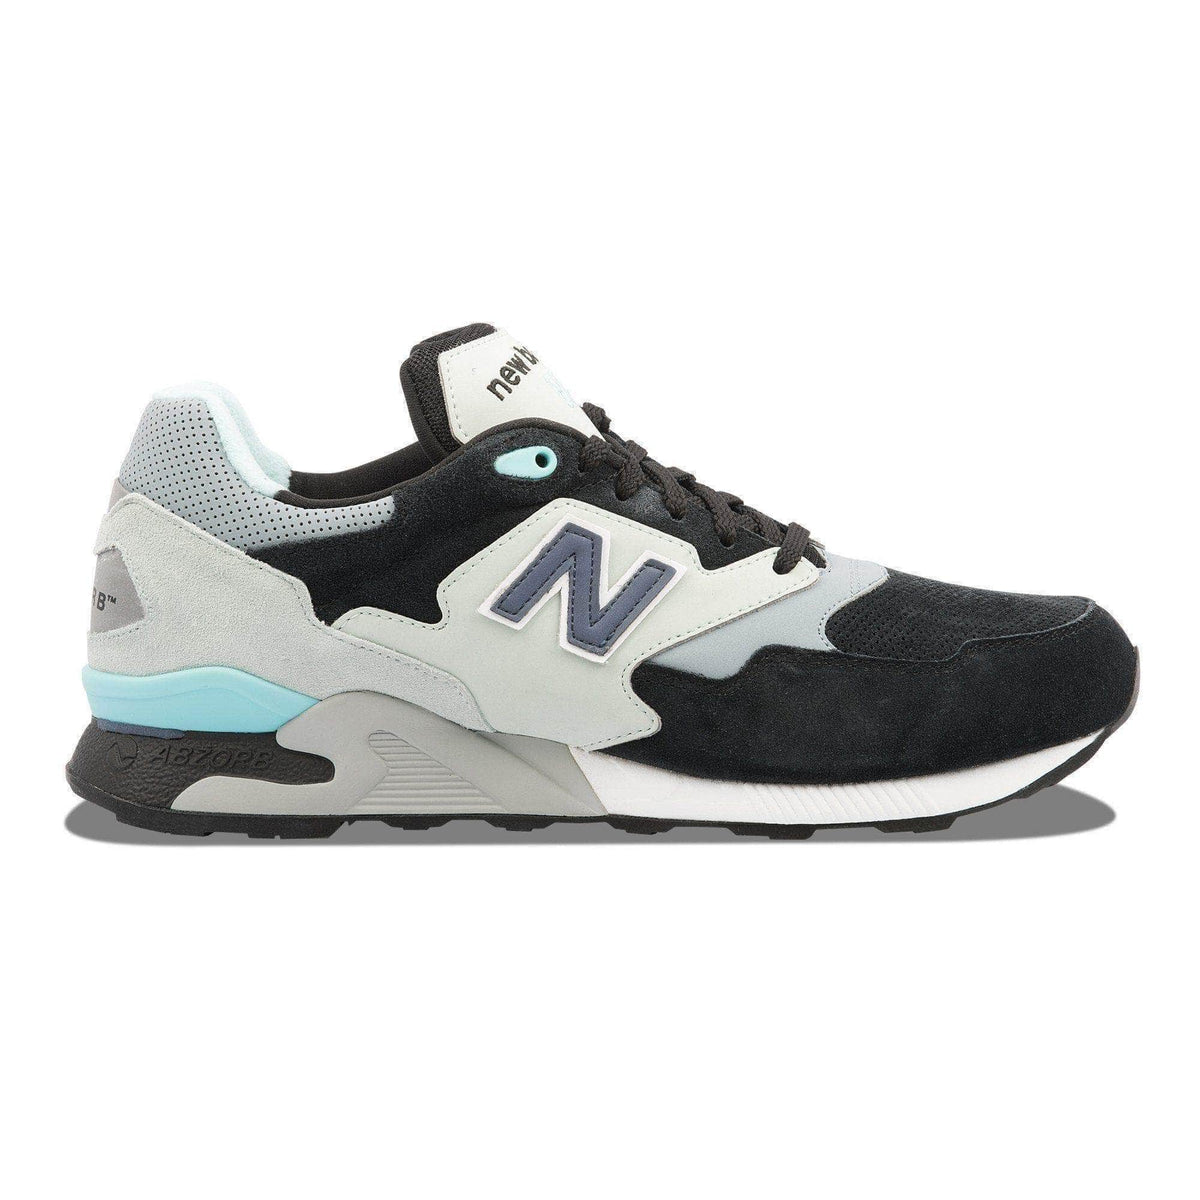 New Balance FOOTWEAR New Balance 878 - Men's